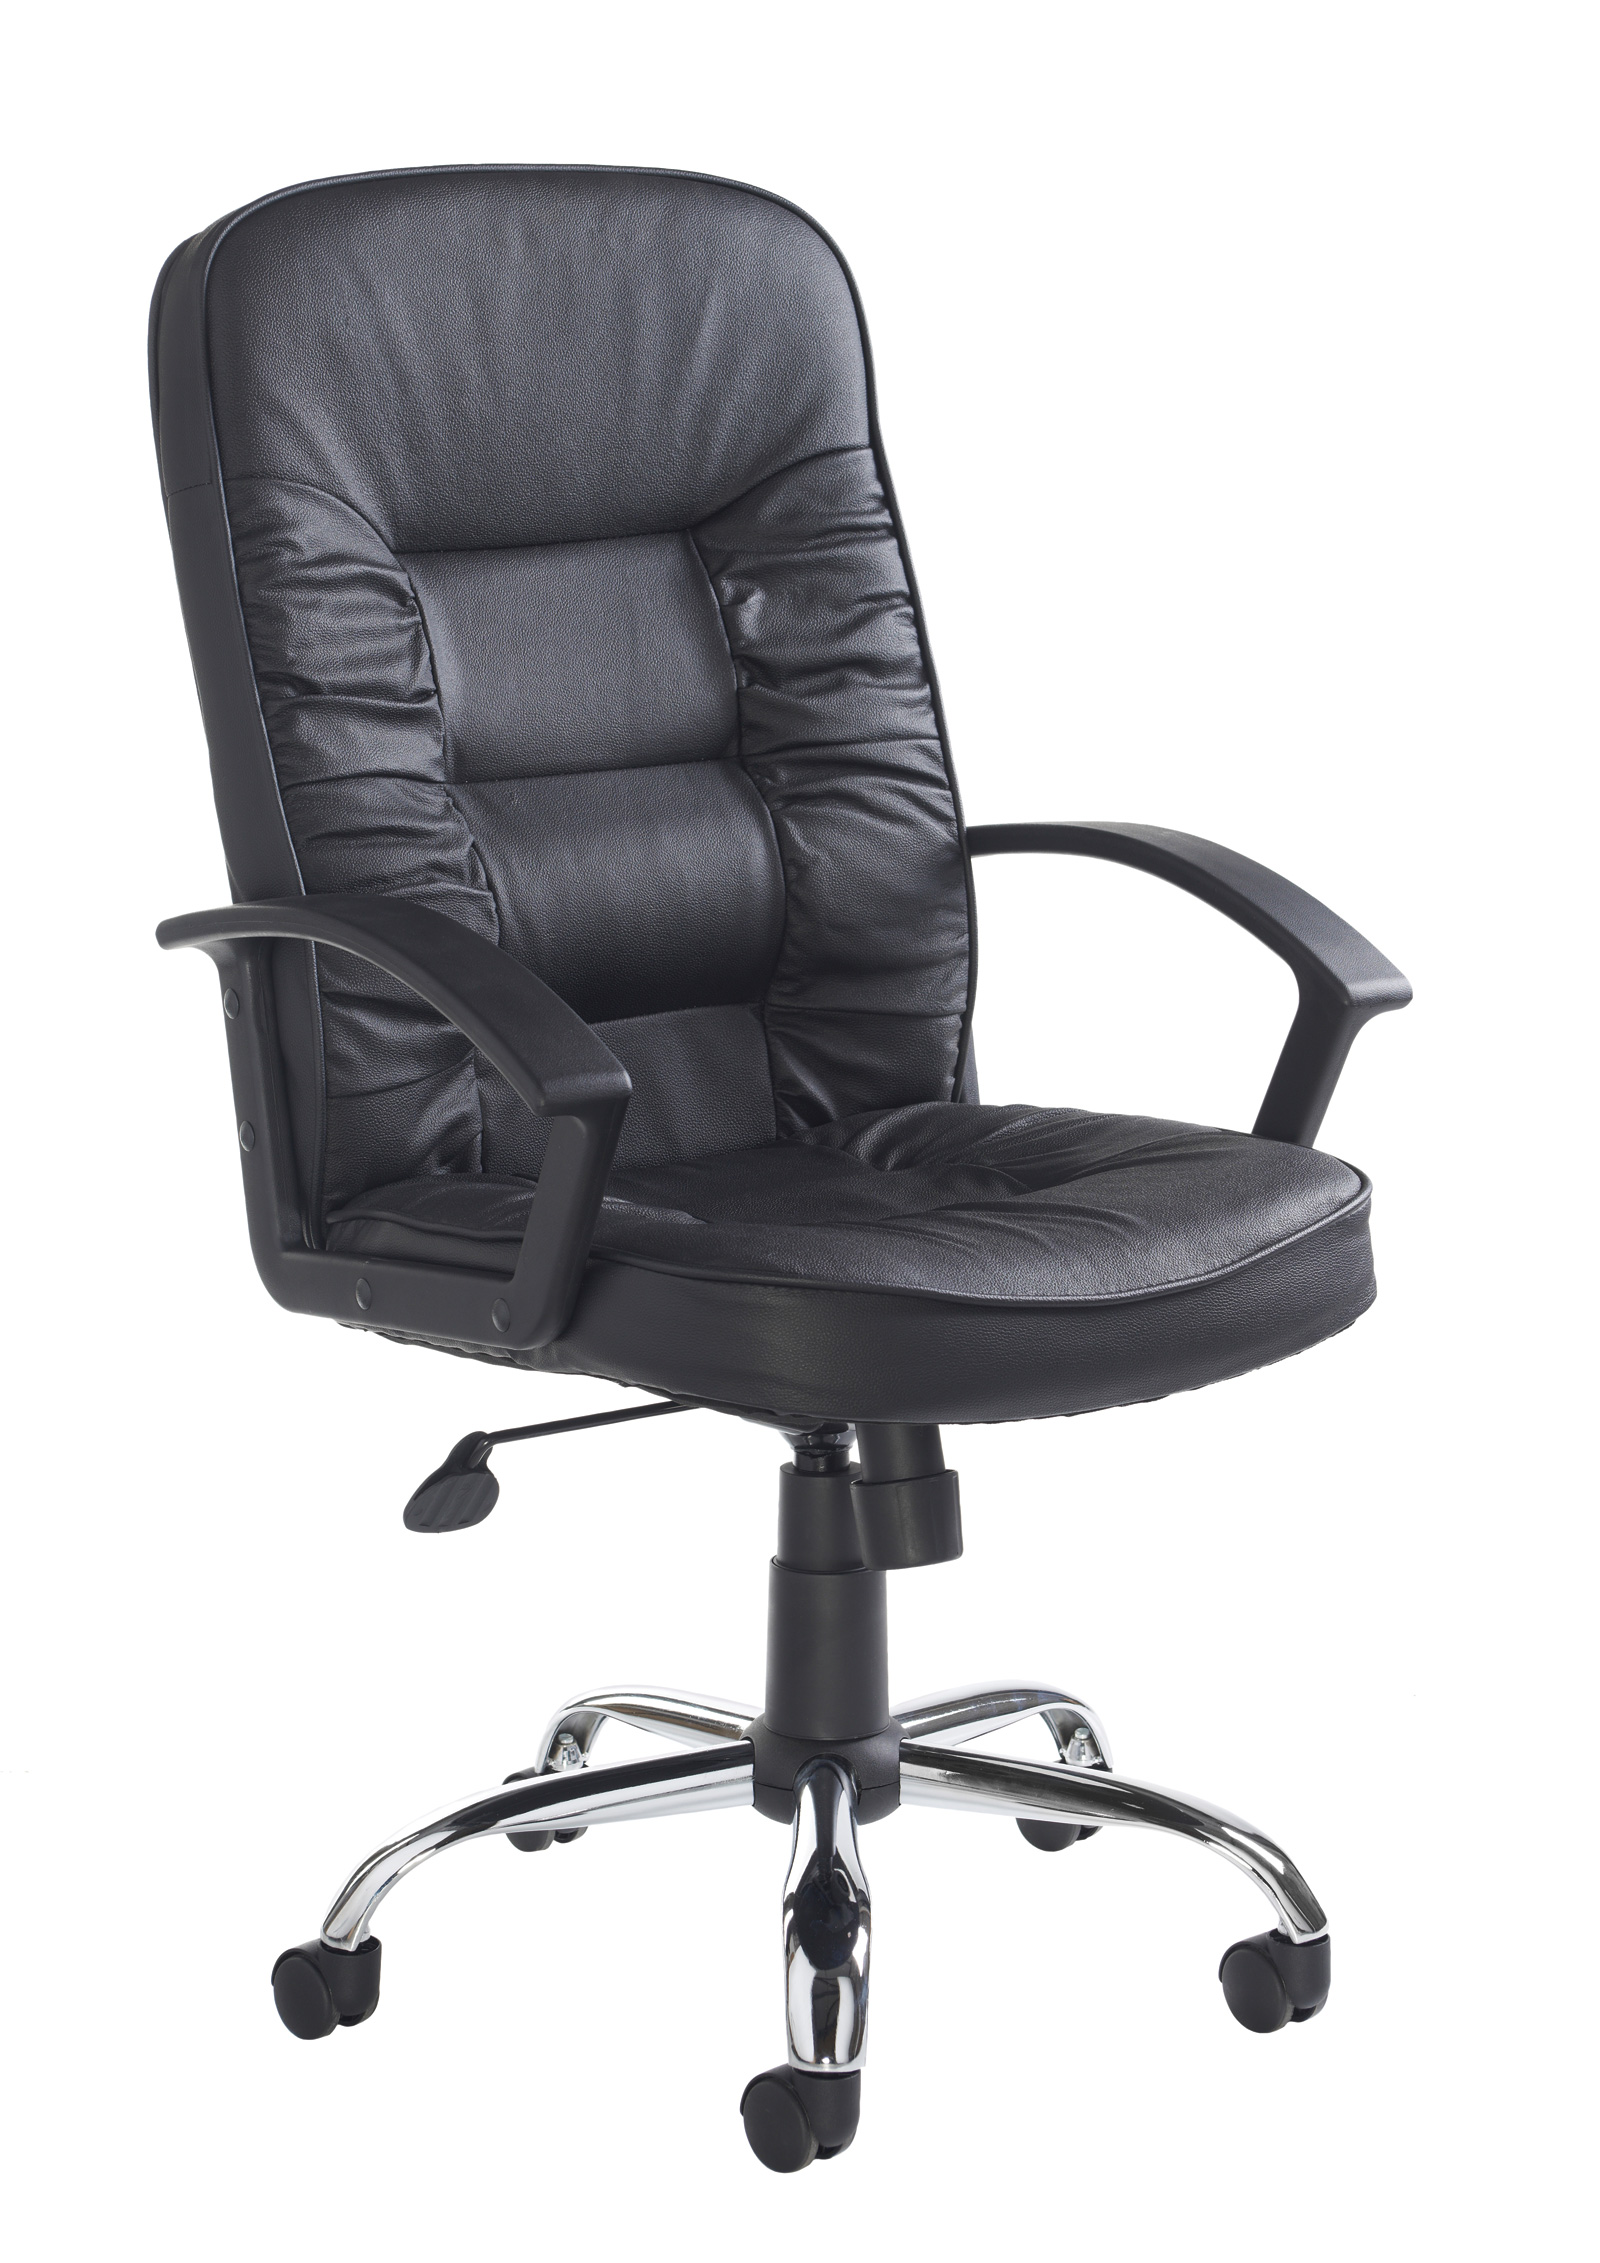 Hertford high back managers chair